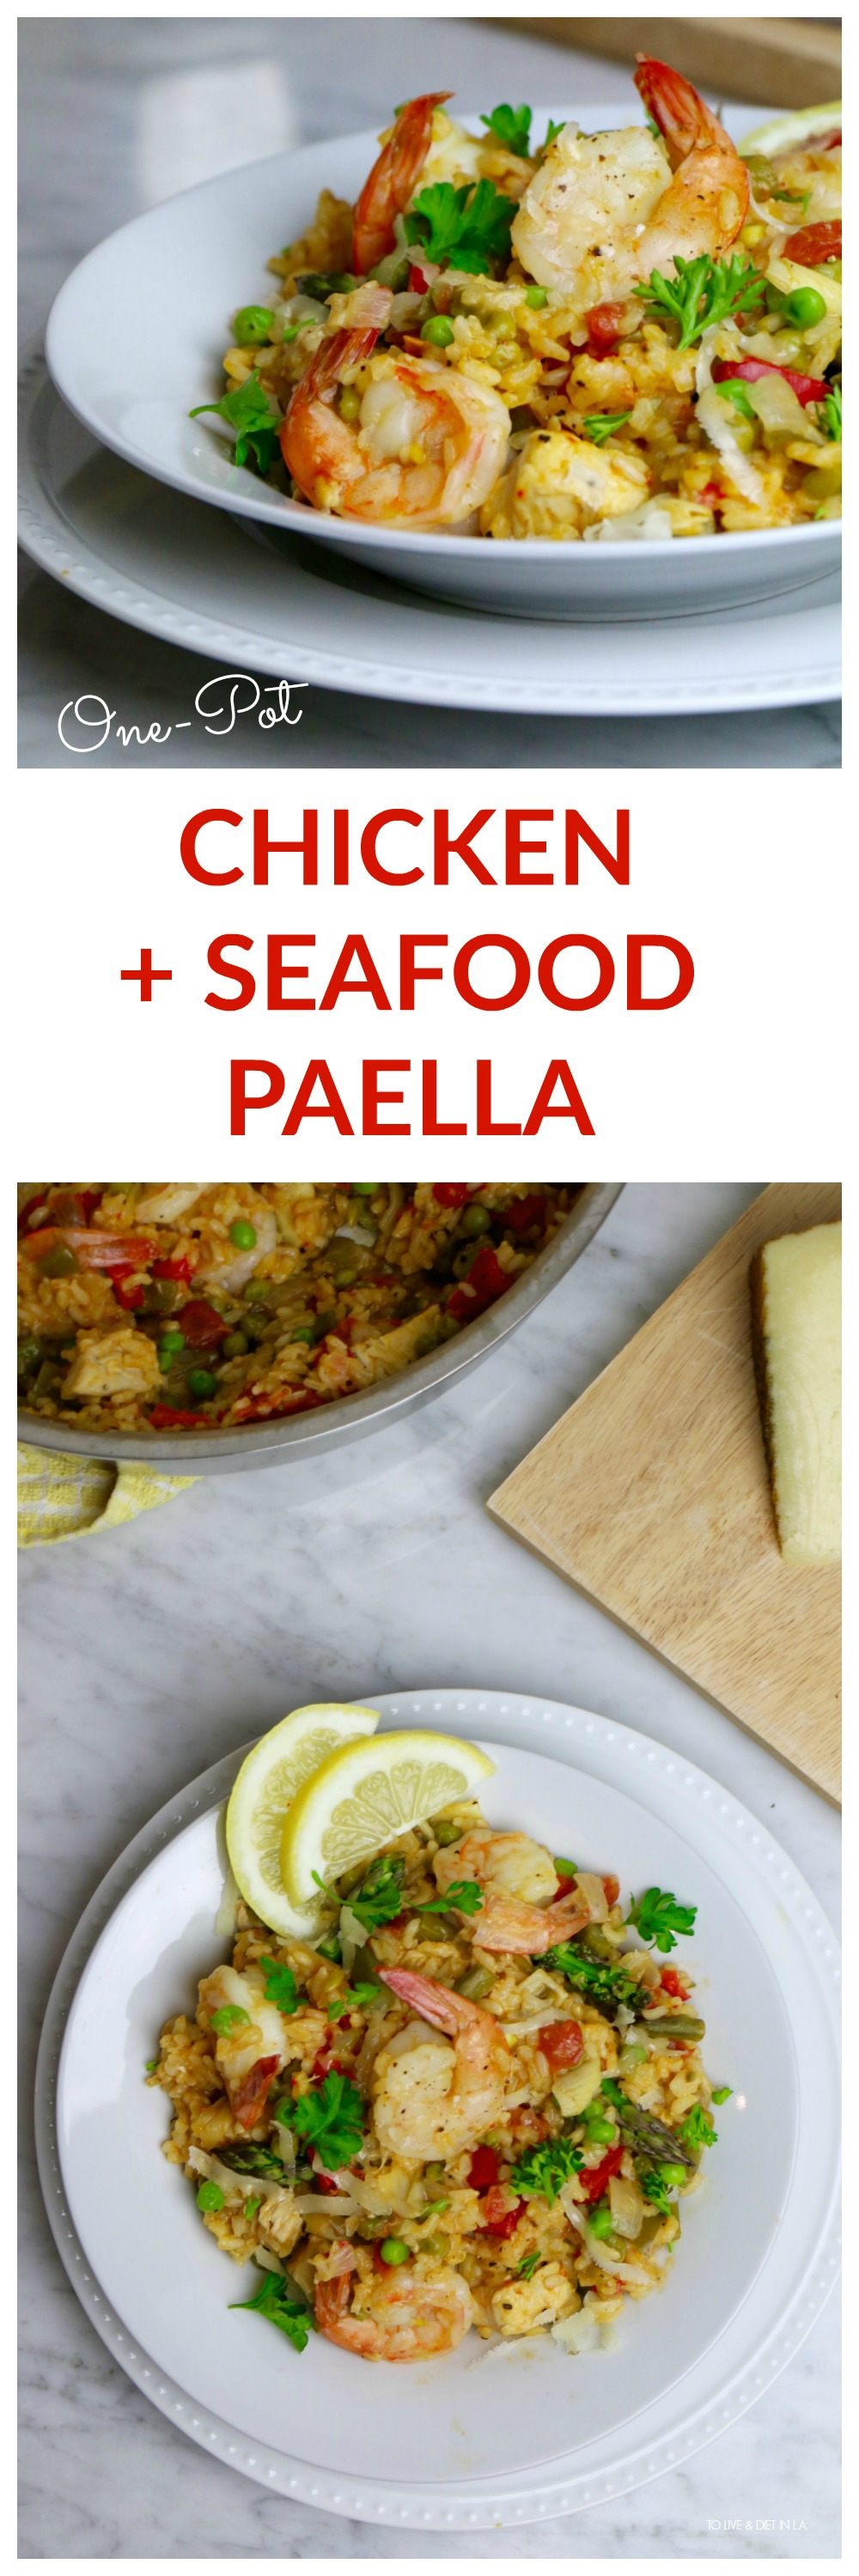 One-Pot Mixed Paella